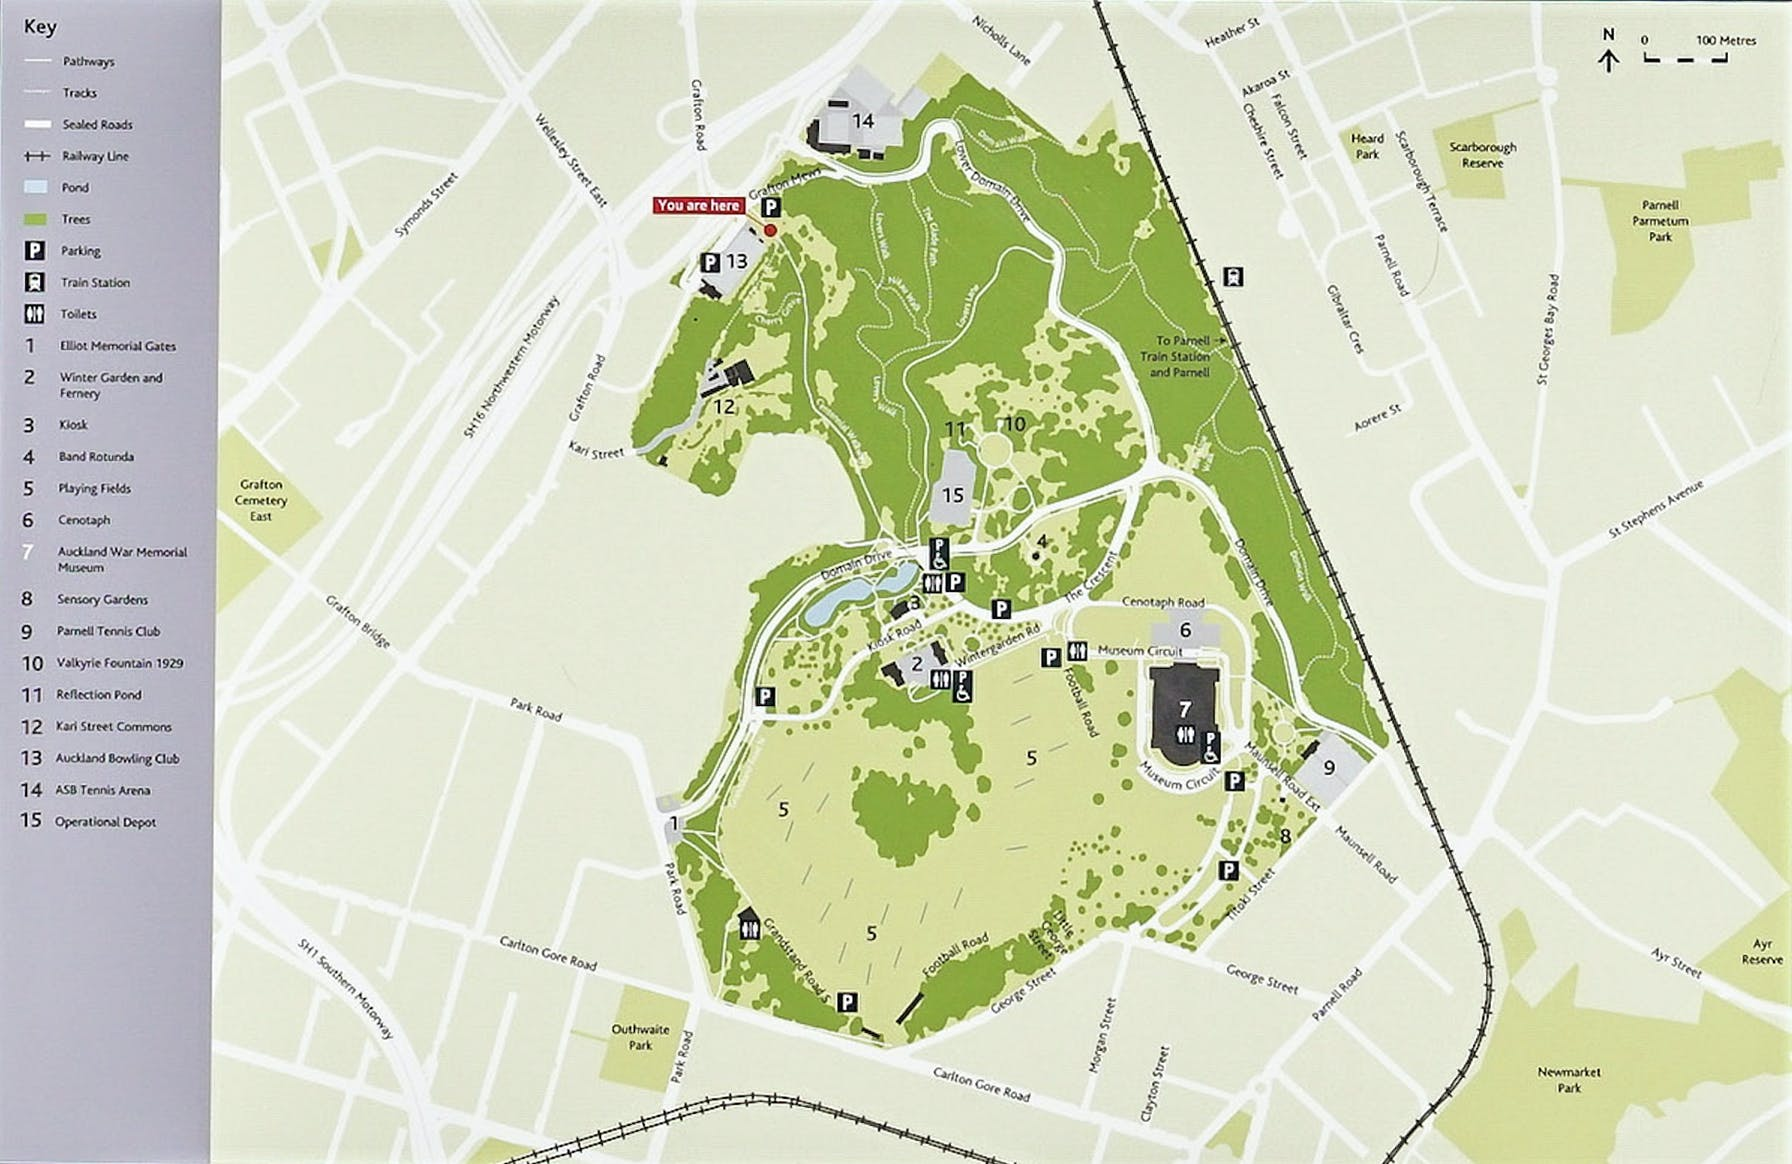 auckland domain map